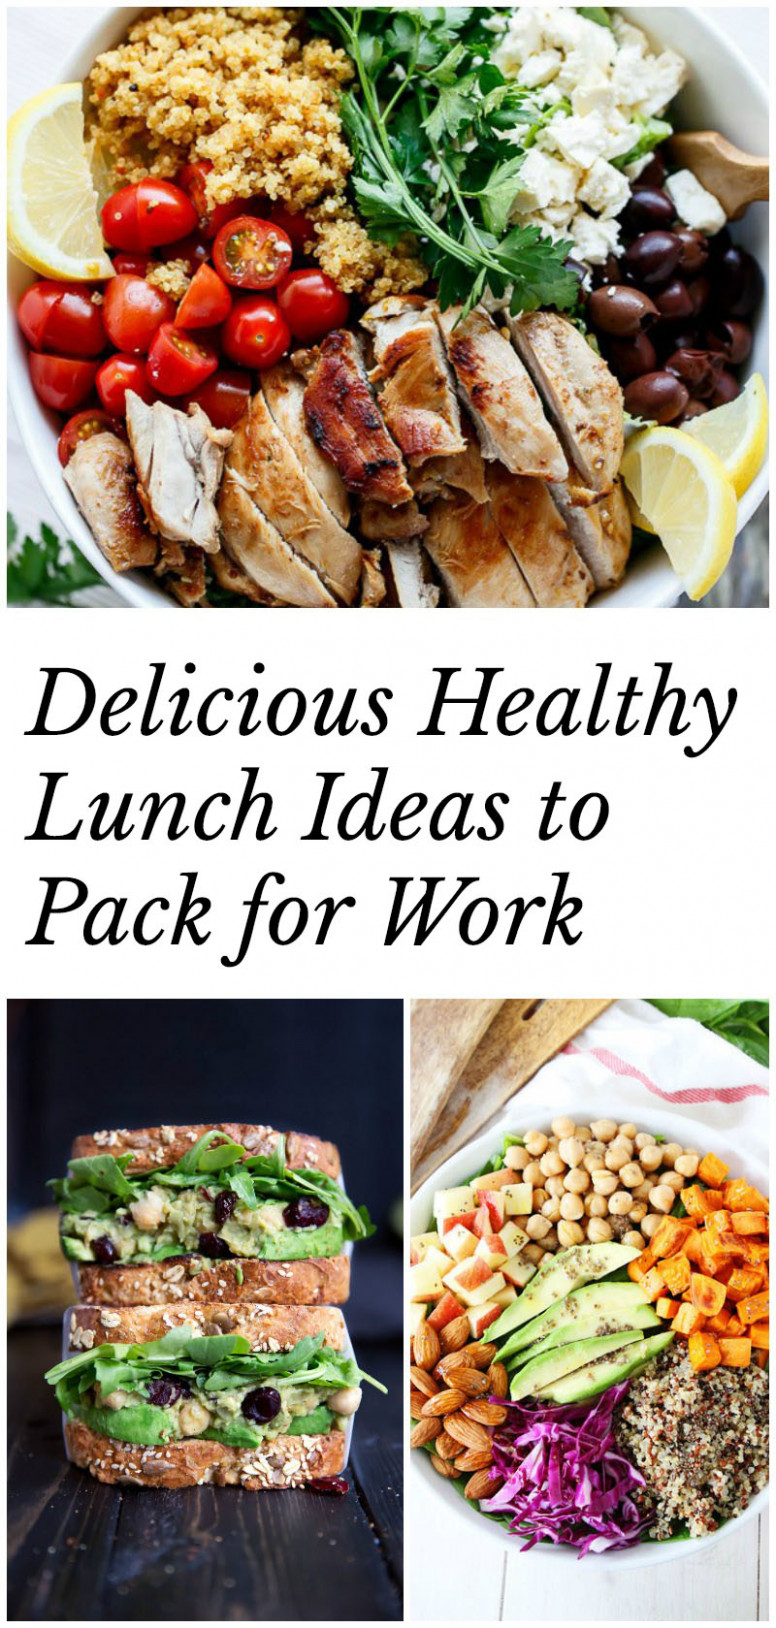 Healthy Lunch Ideas to Pack for Work (12+ recipes!) - recipes for lunch healthy